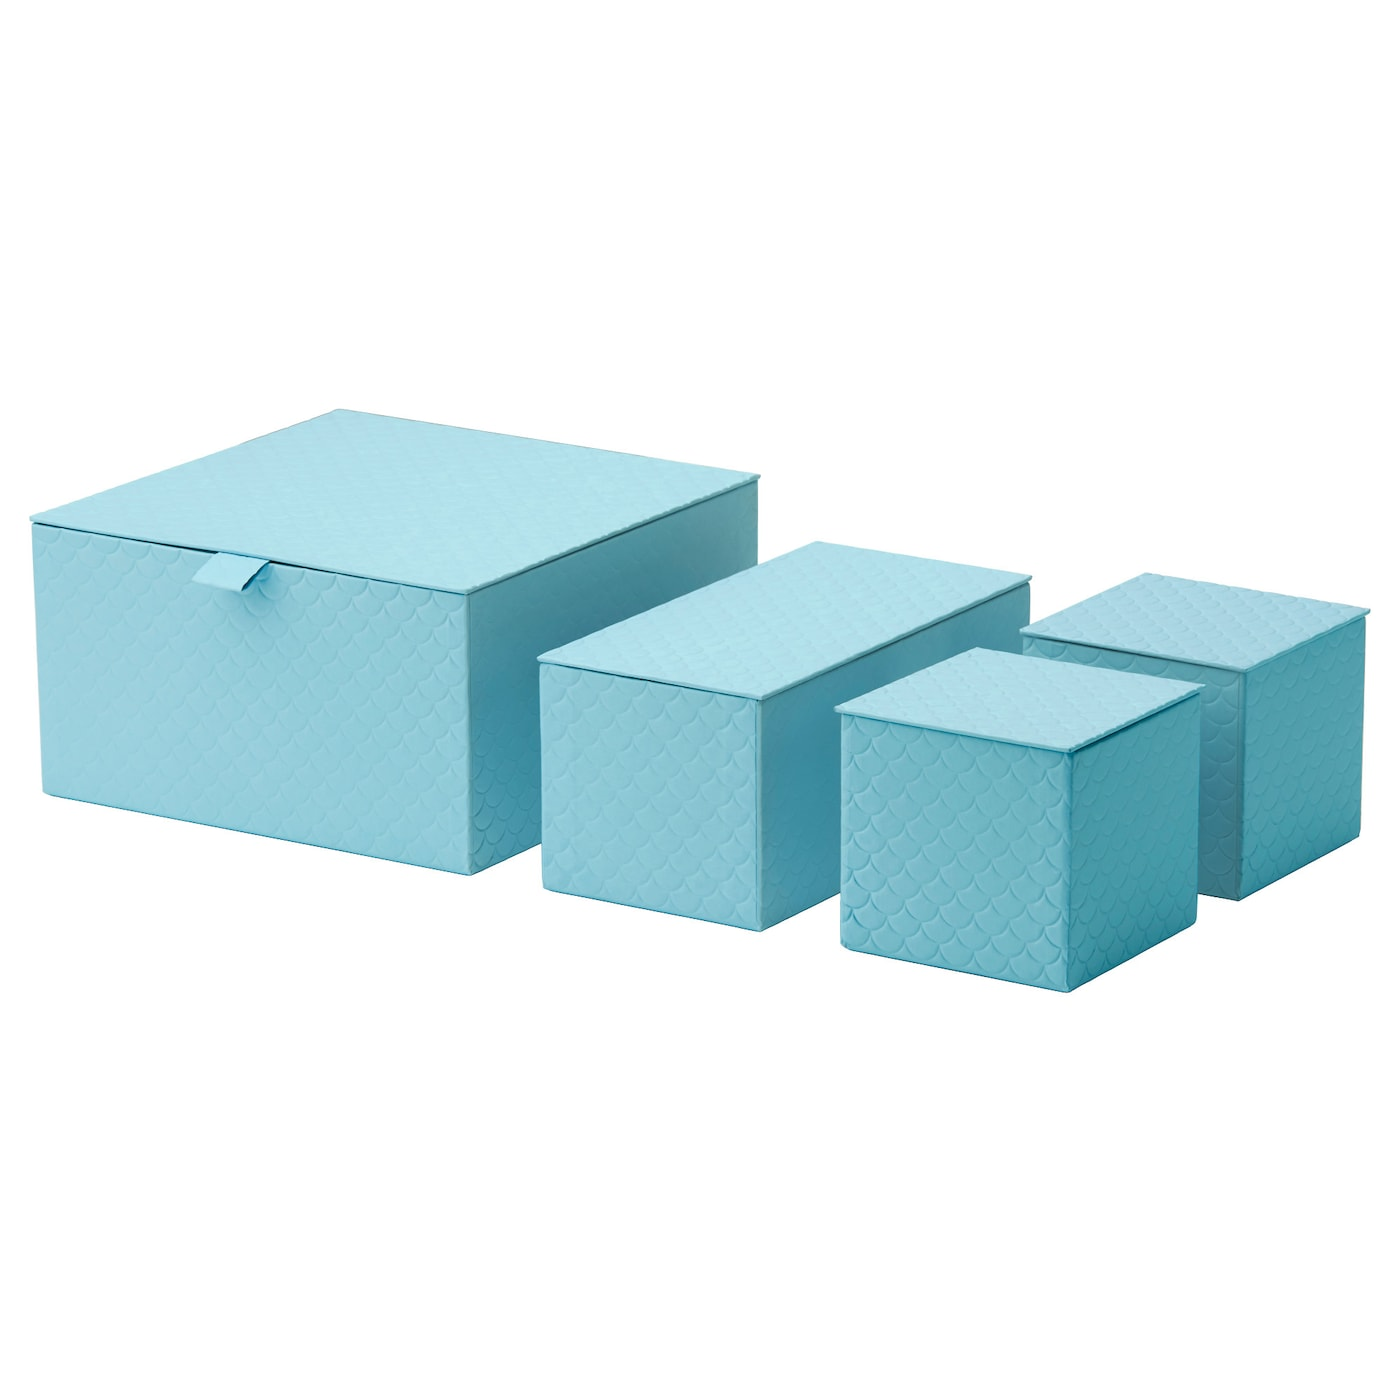 pallra box with lid set of 4 light blue ikea. Black Bedroom Furniture Sets. Home Design Ideas